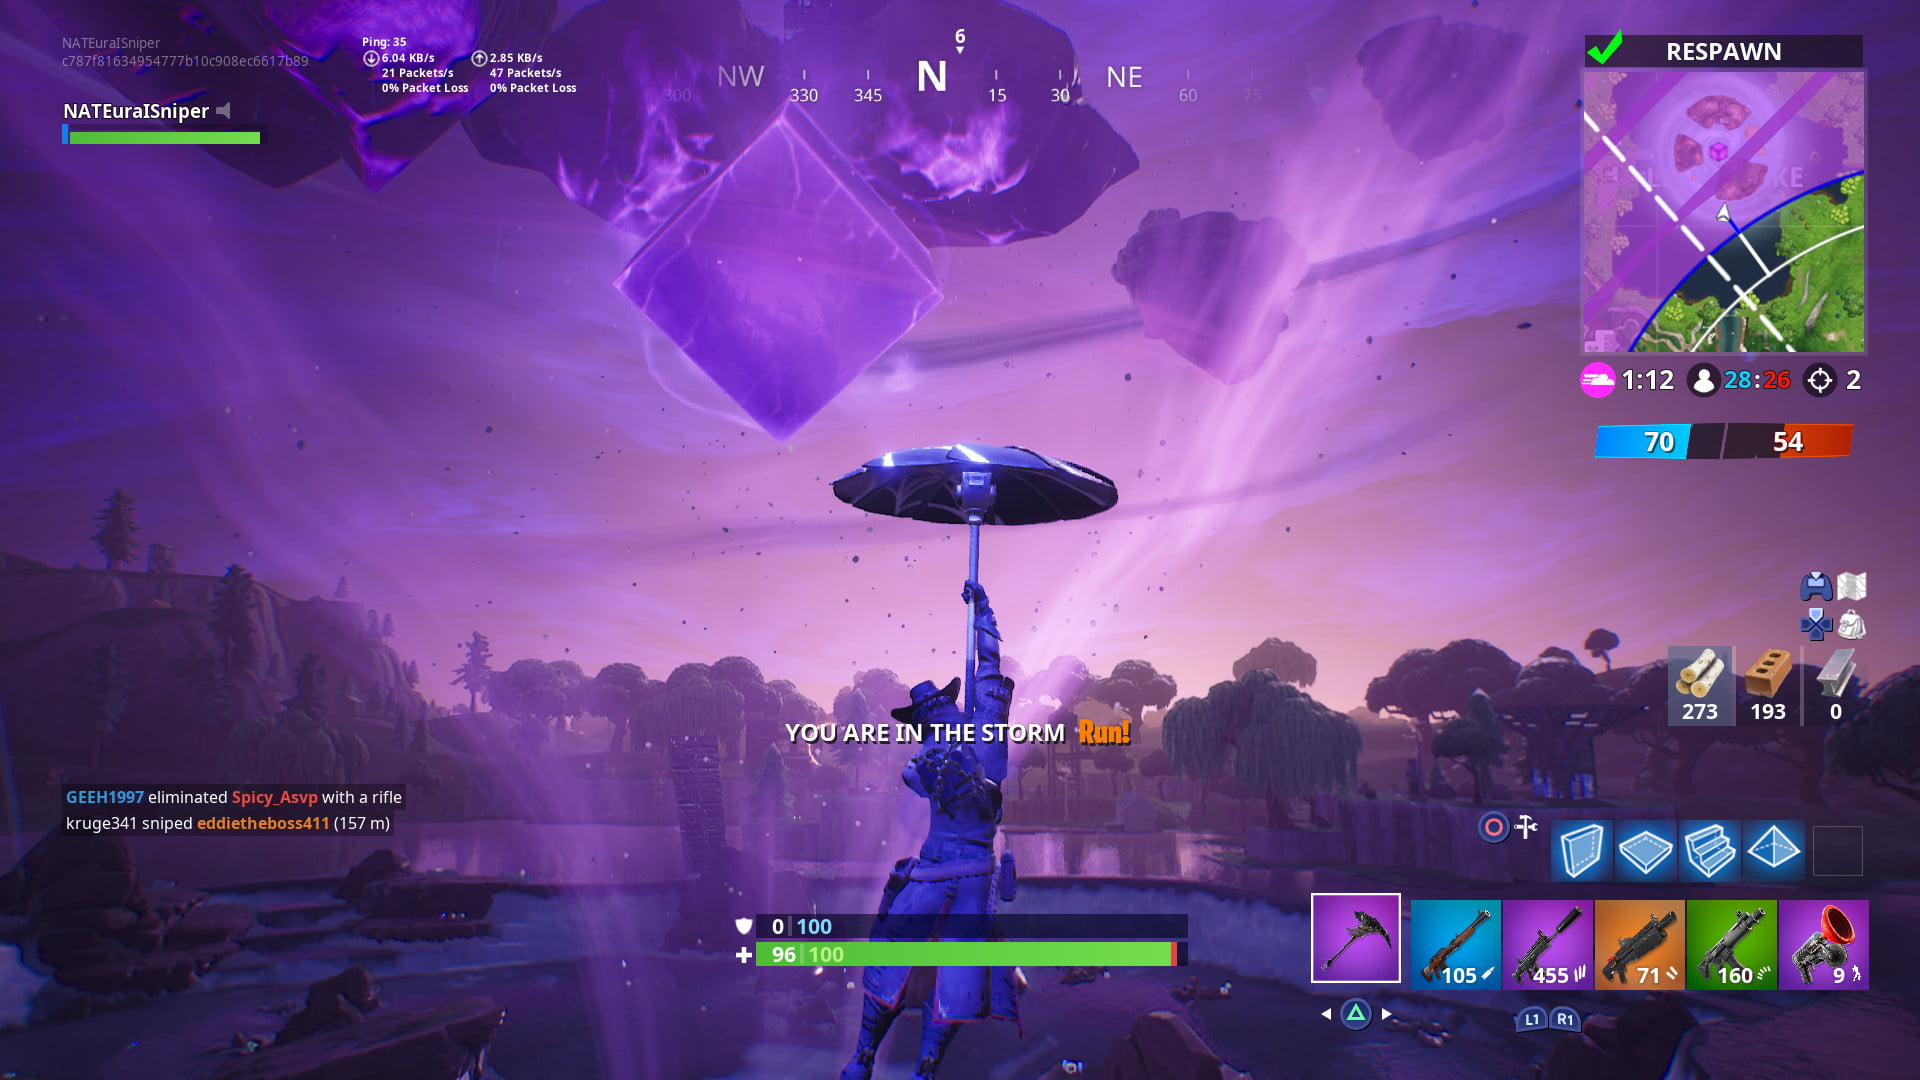 Fortnite Review: A Year Later, It Remains a Battle Royale